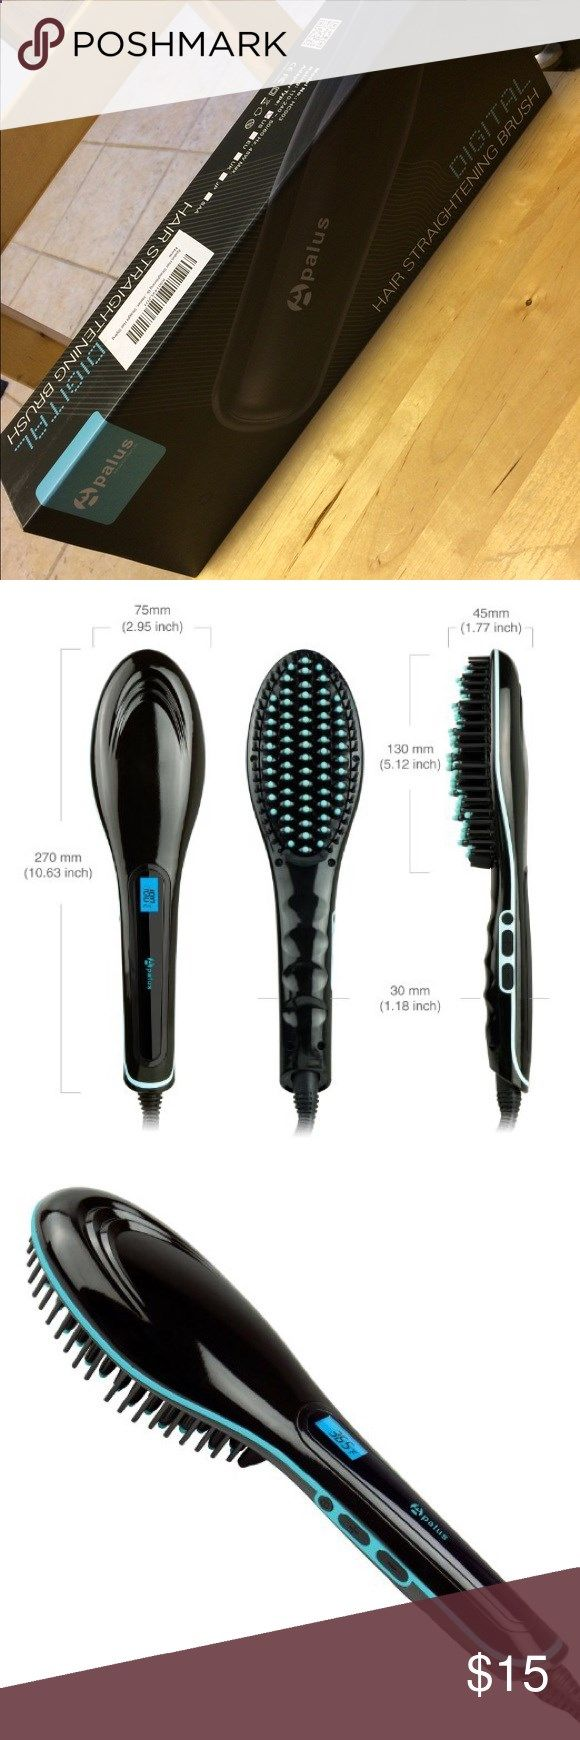 Apalus Digital Hair Straightening Brush Brand new never opened. Fast natural styling, less direct heat on your hair to save from damage! Other